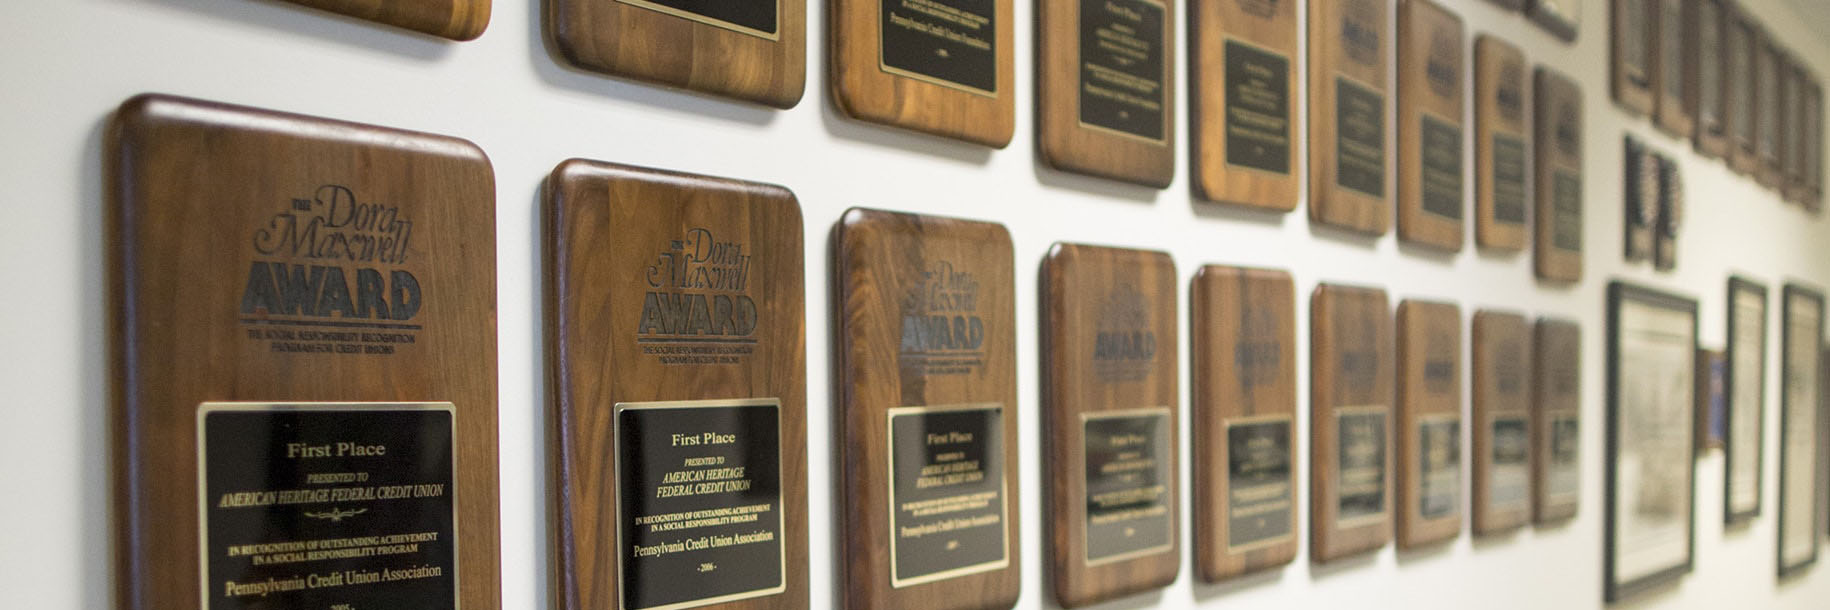 Award plaques hung on wall